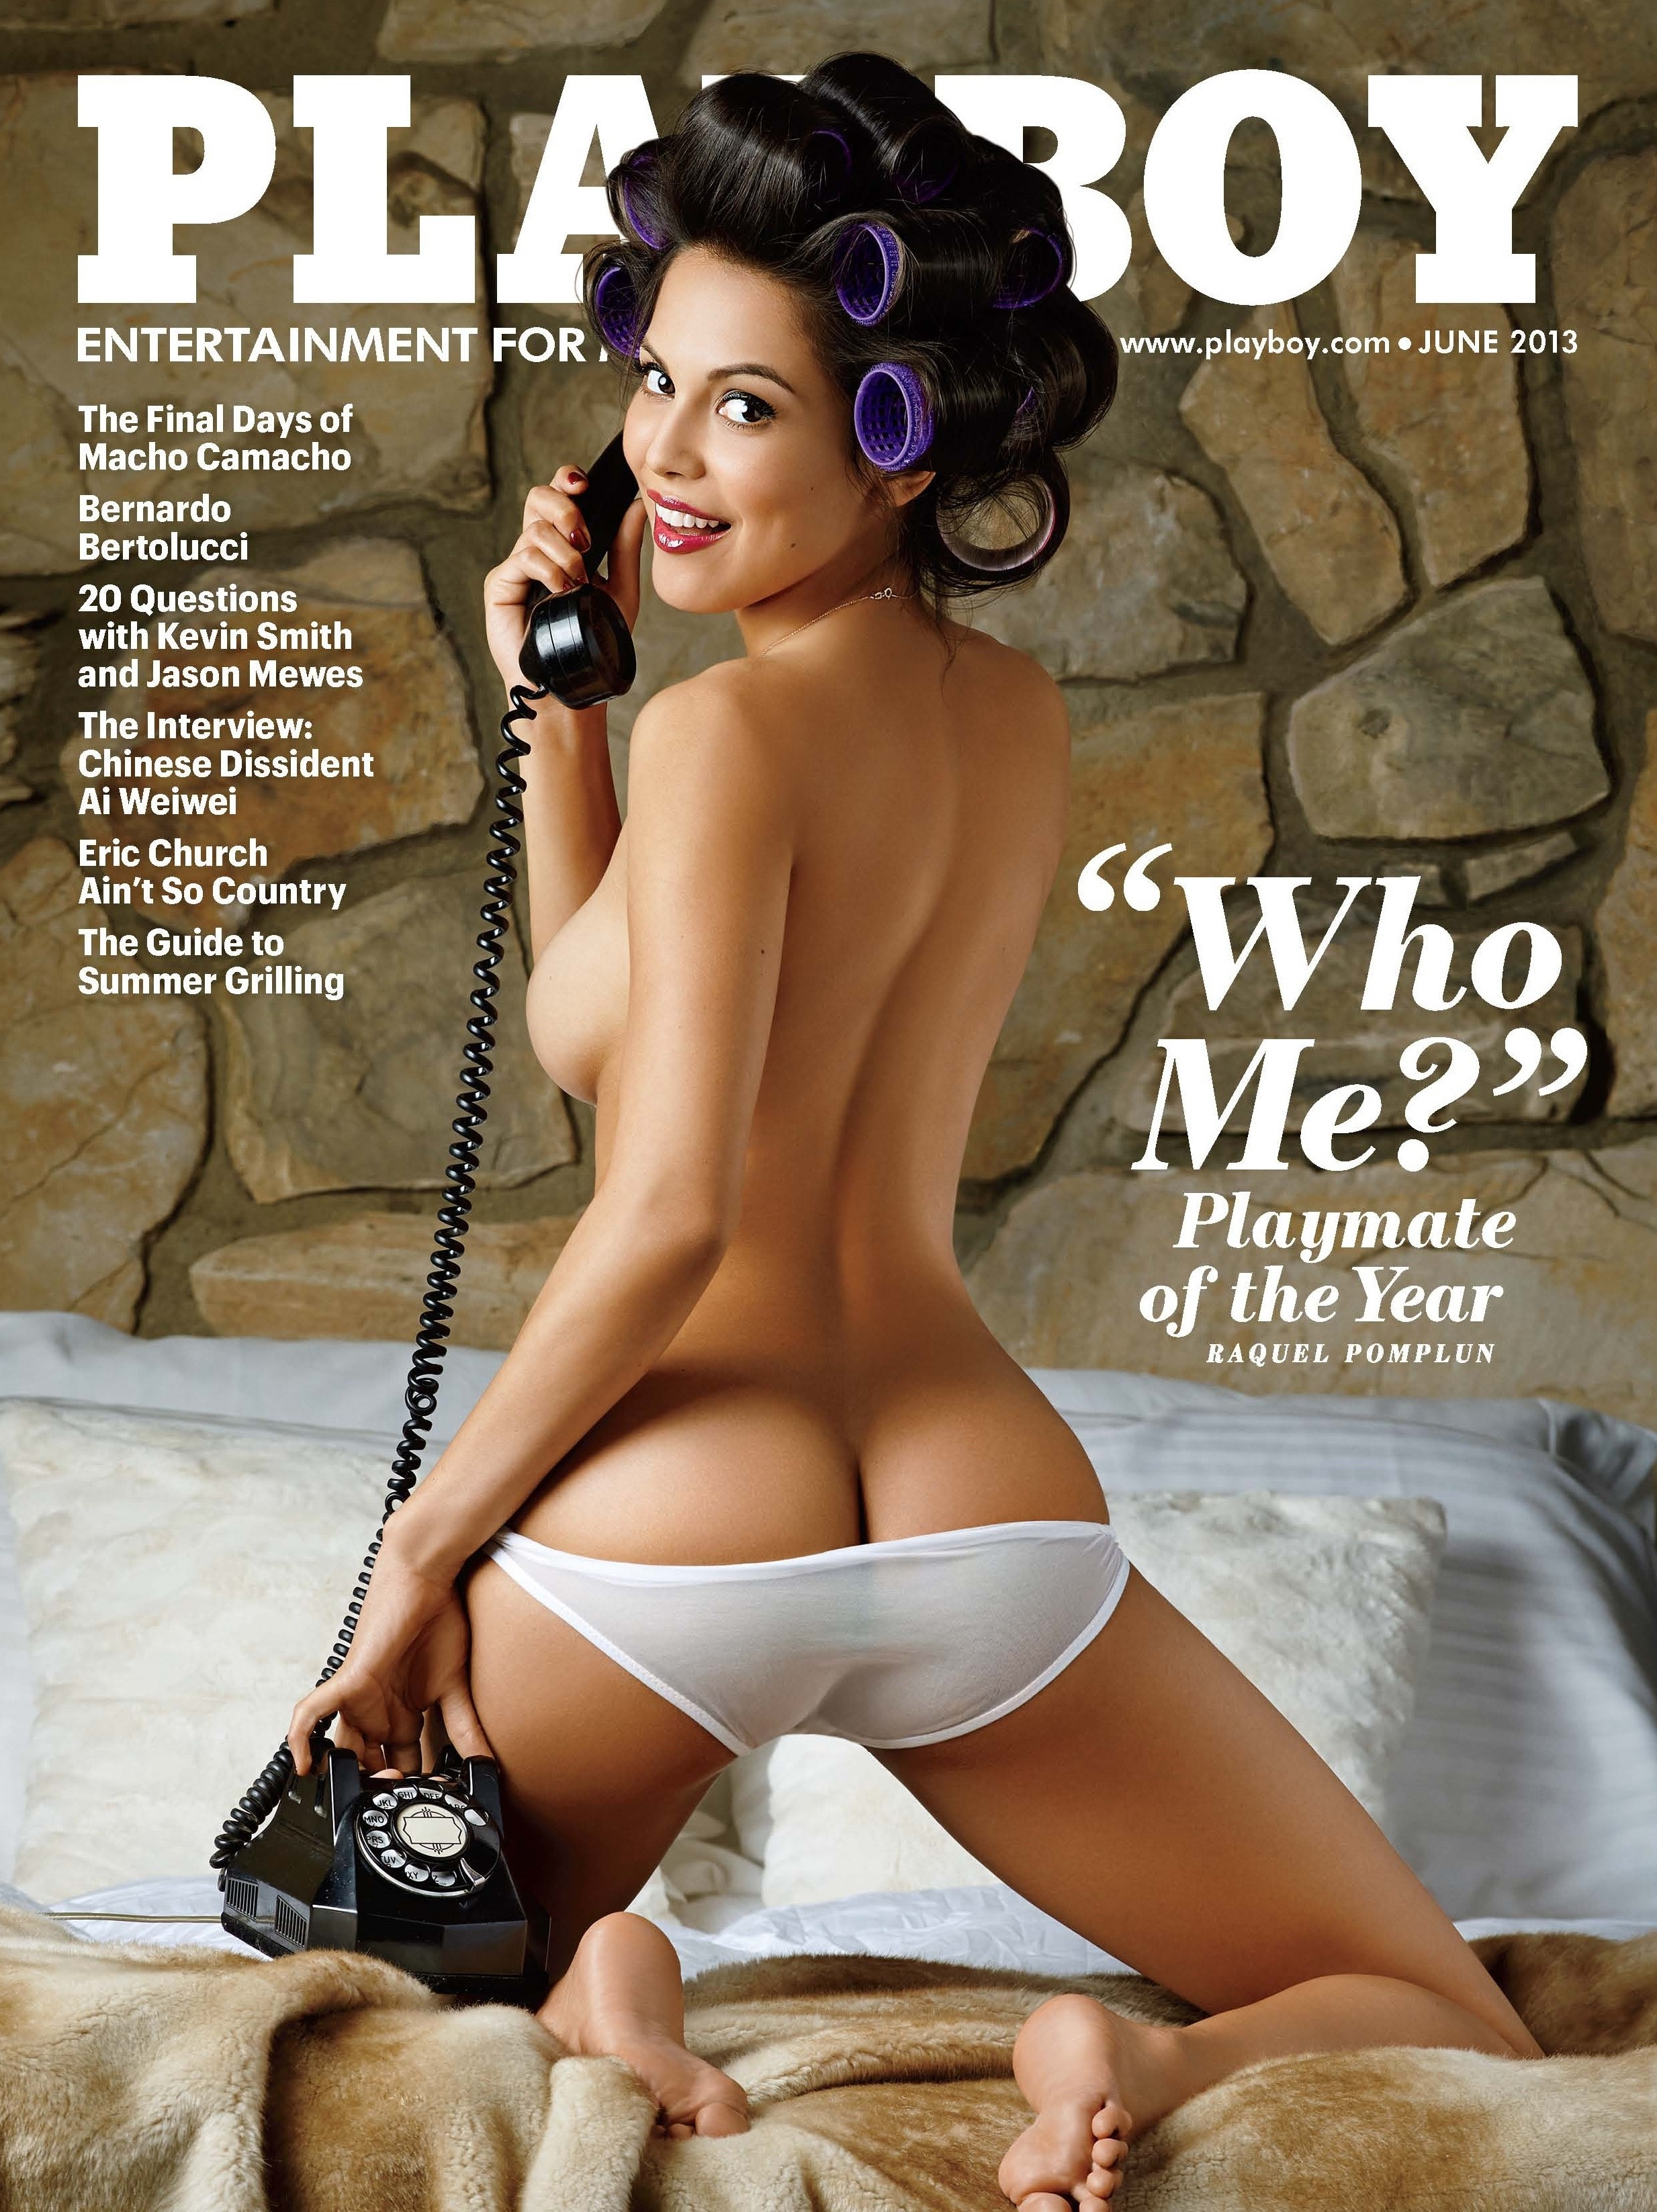 Raquel Pomplun named the 2013 Playboy Playmate of the Year